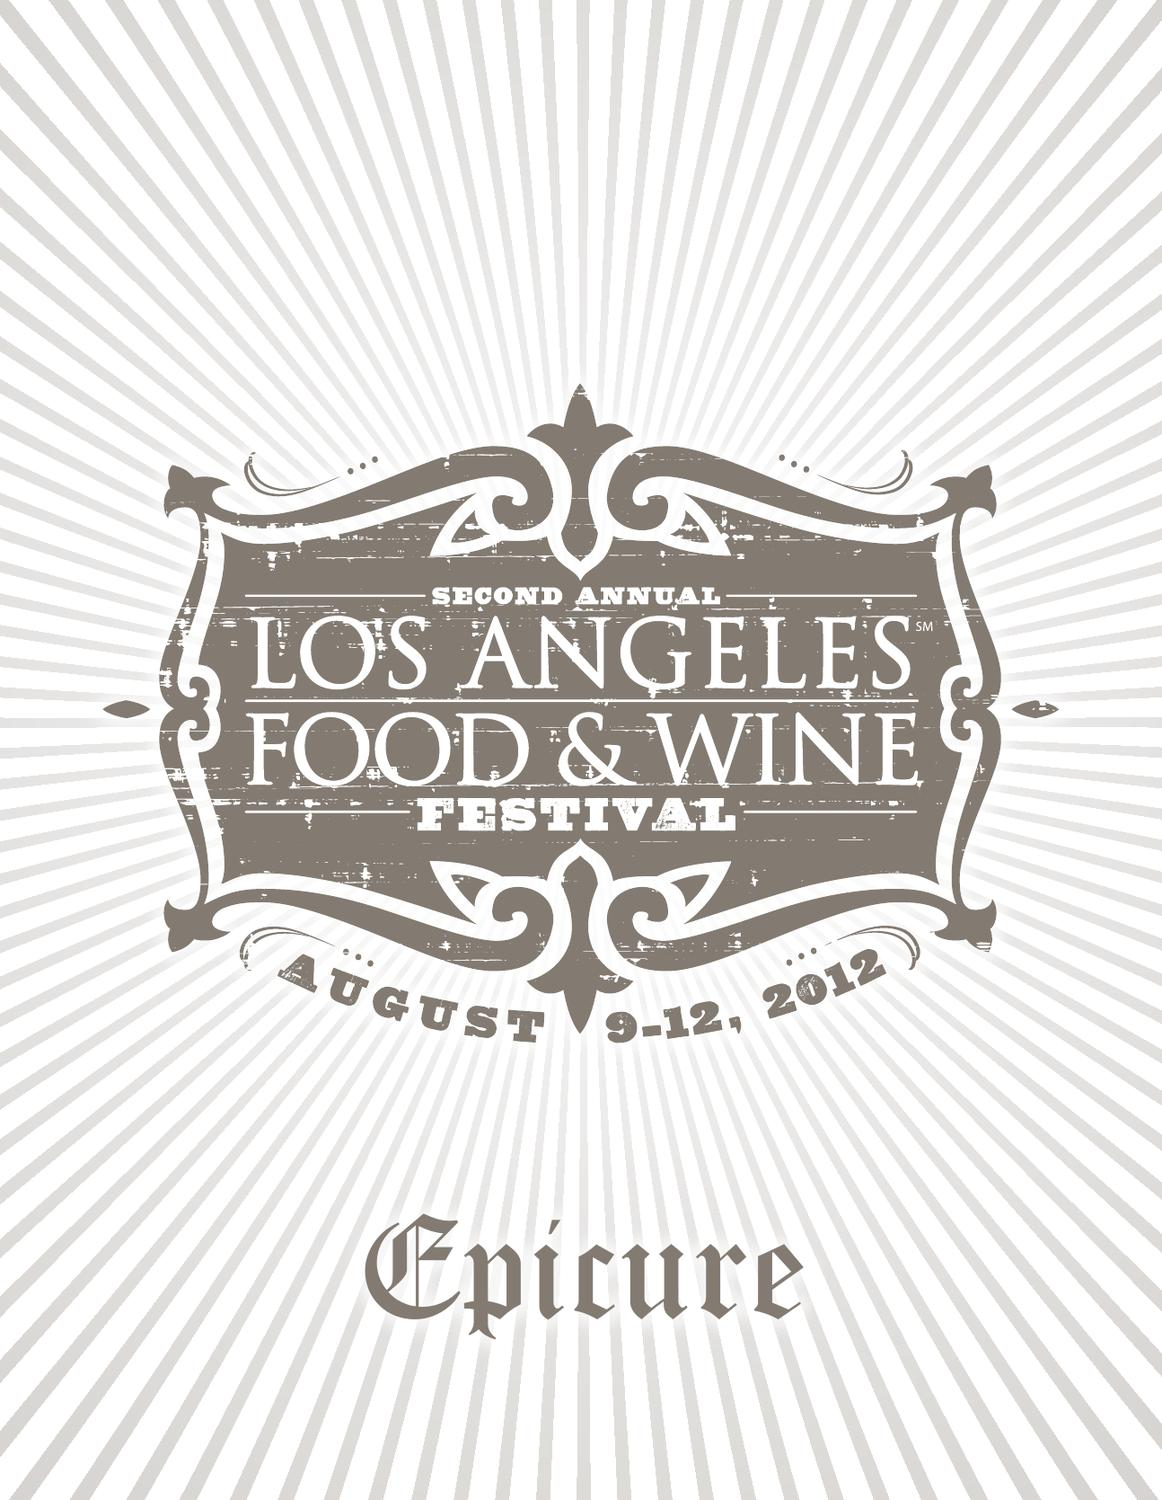 La Cucina Catering Britt Wetzel Los Angeles Food Wine 2012 Epicure By Clm Mry Issuu